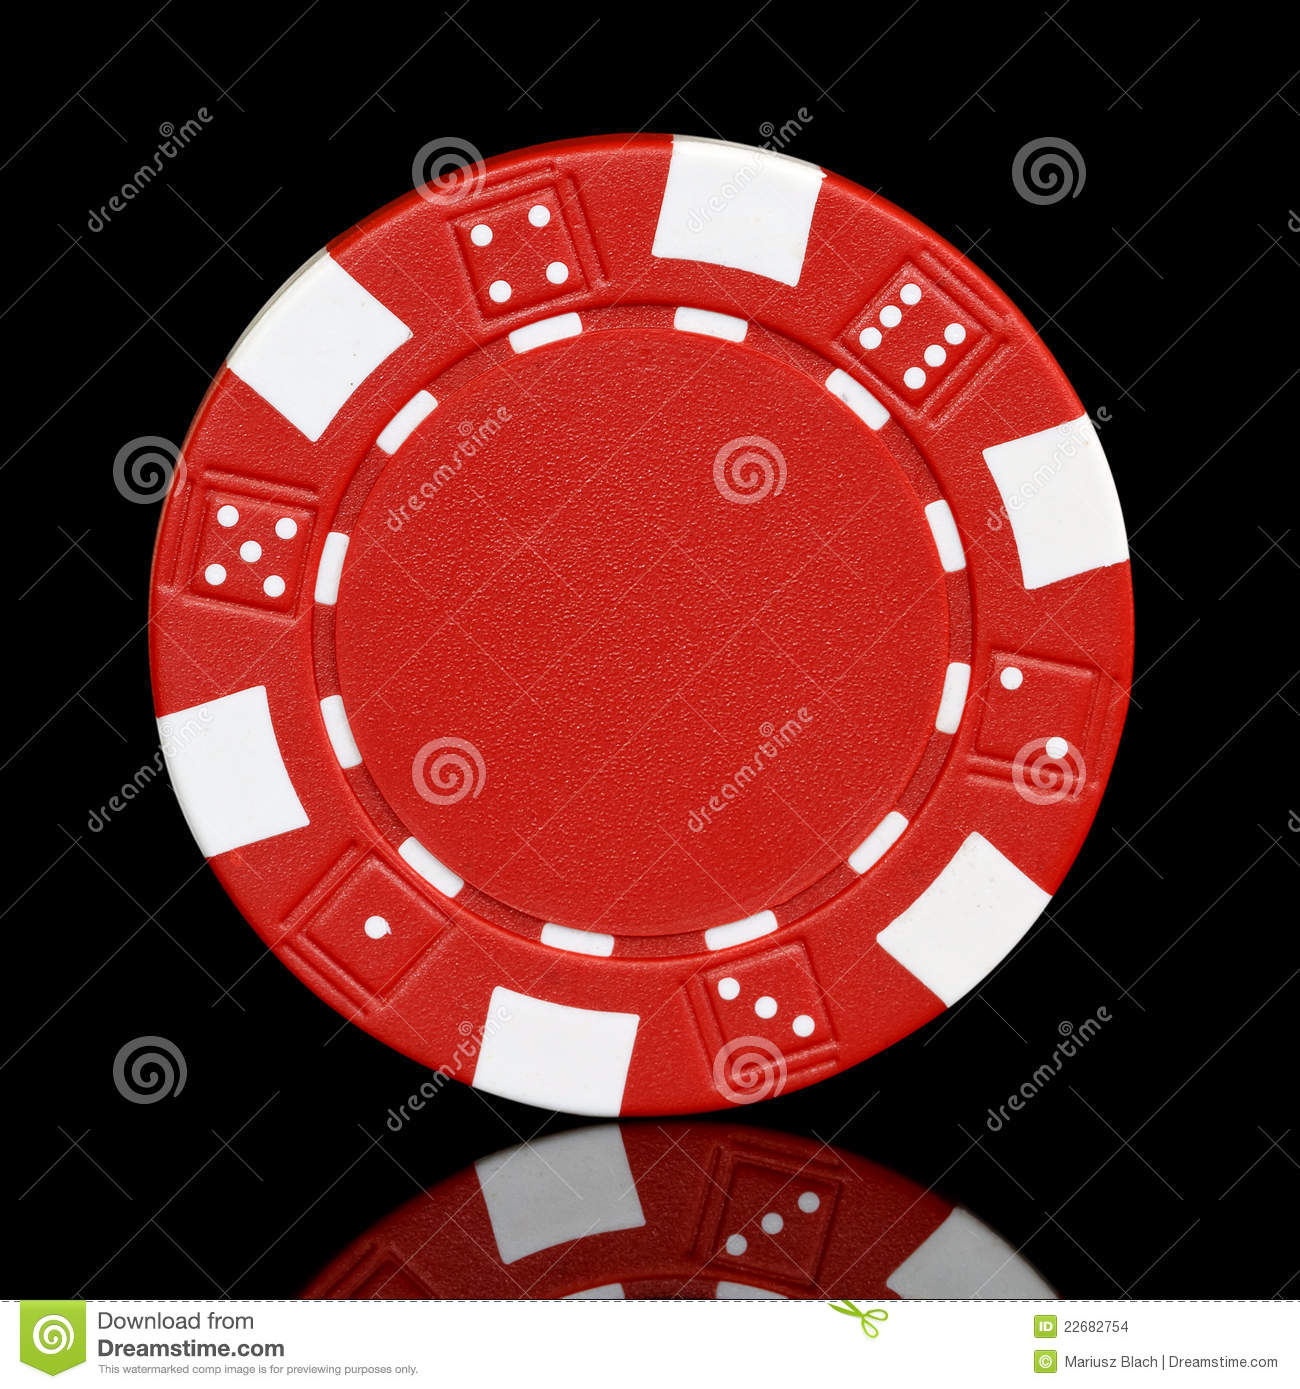 As poker red